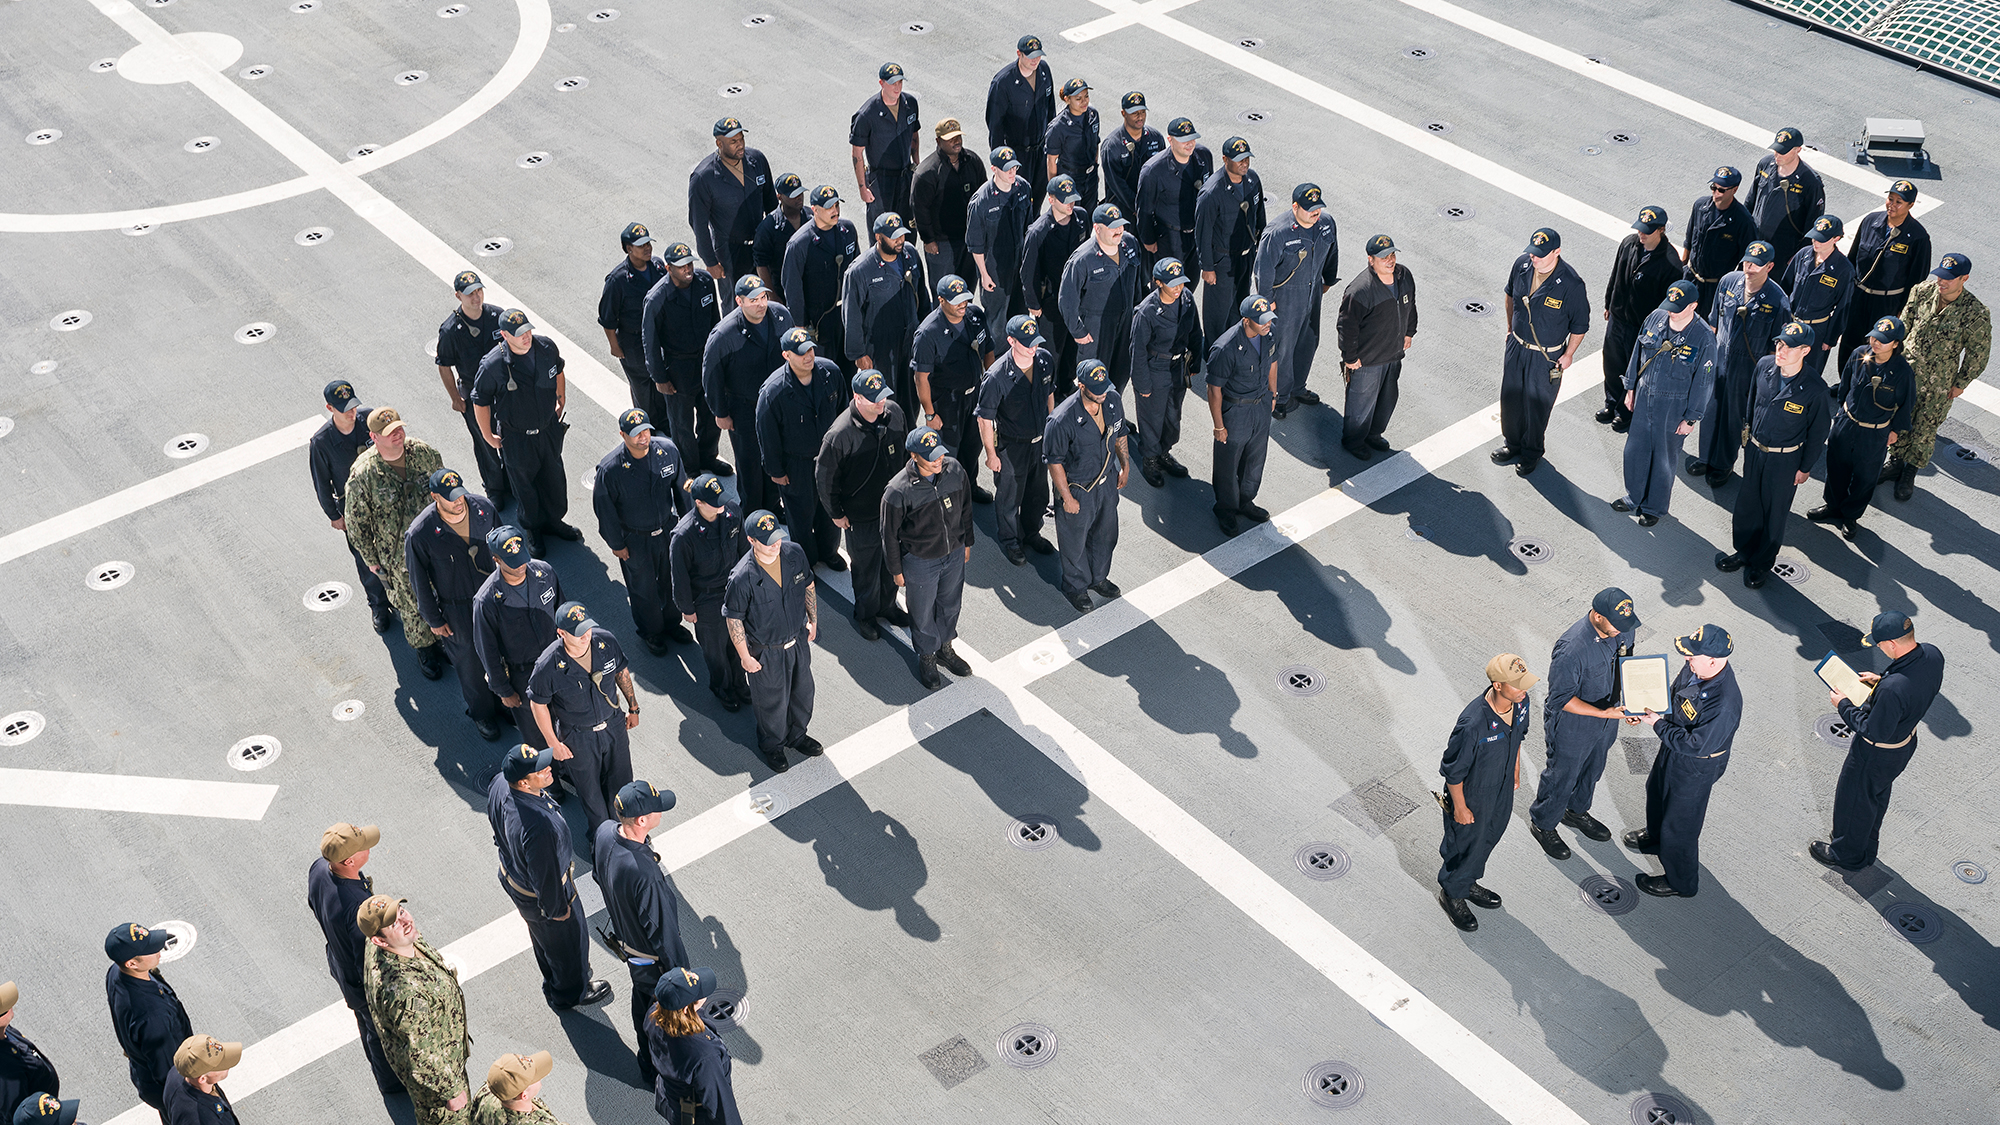 The Navy S Uss Gabrielle Giffords And The Future Of Work The Atlantic